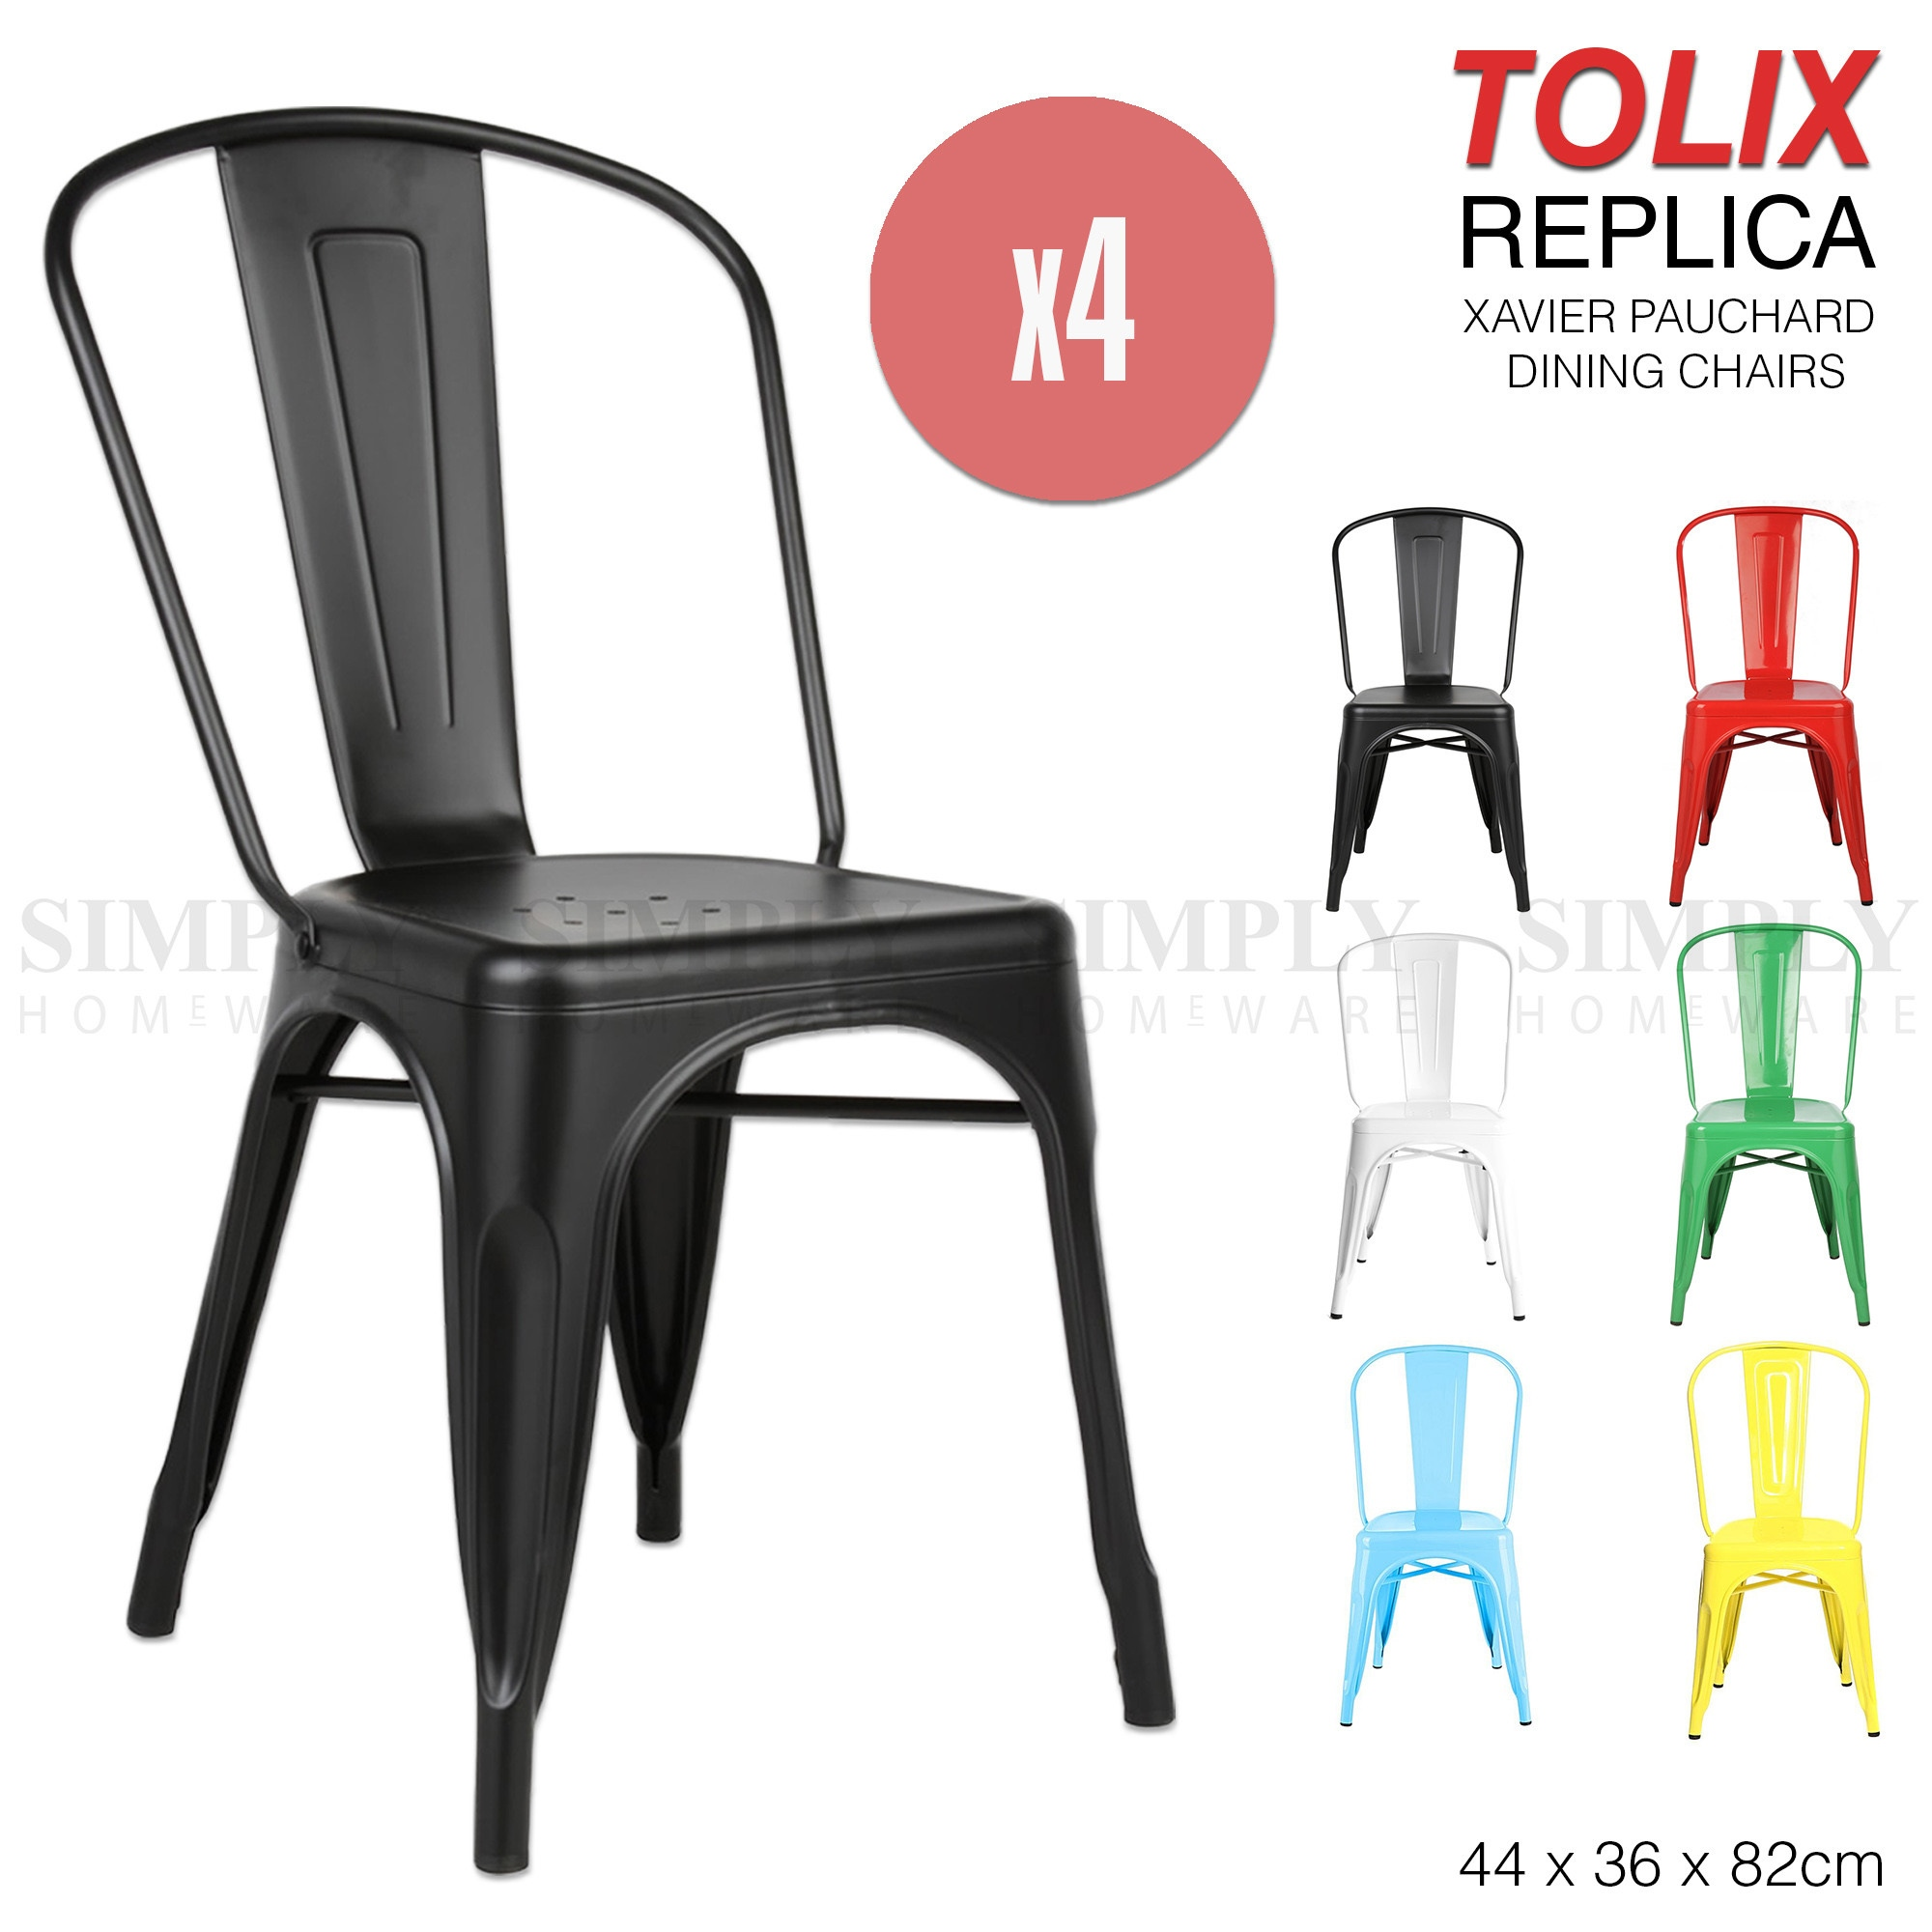 4 x Replica Tolix Chairs Xavier Pauchard Dining Steel Industrial Bar Stool Metal